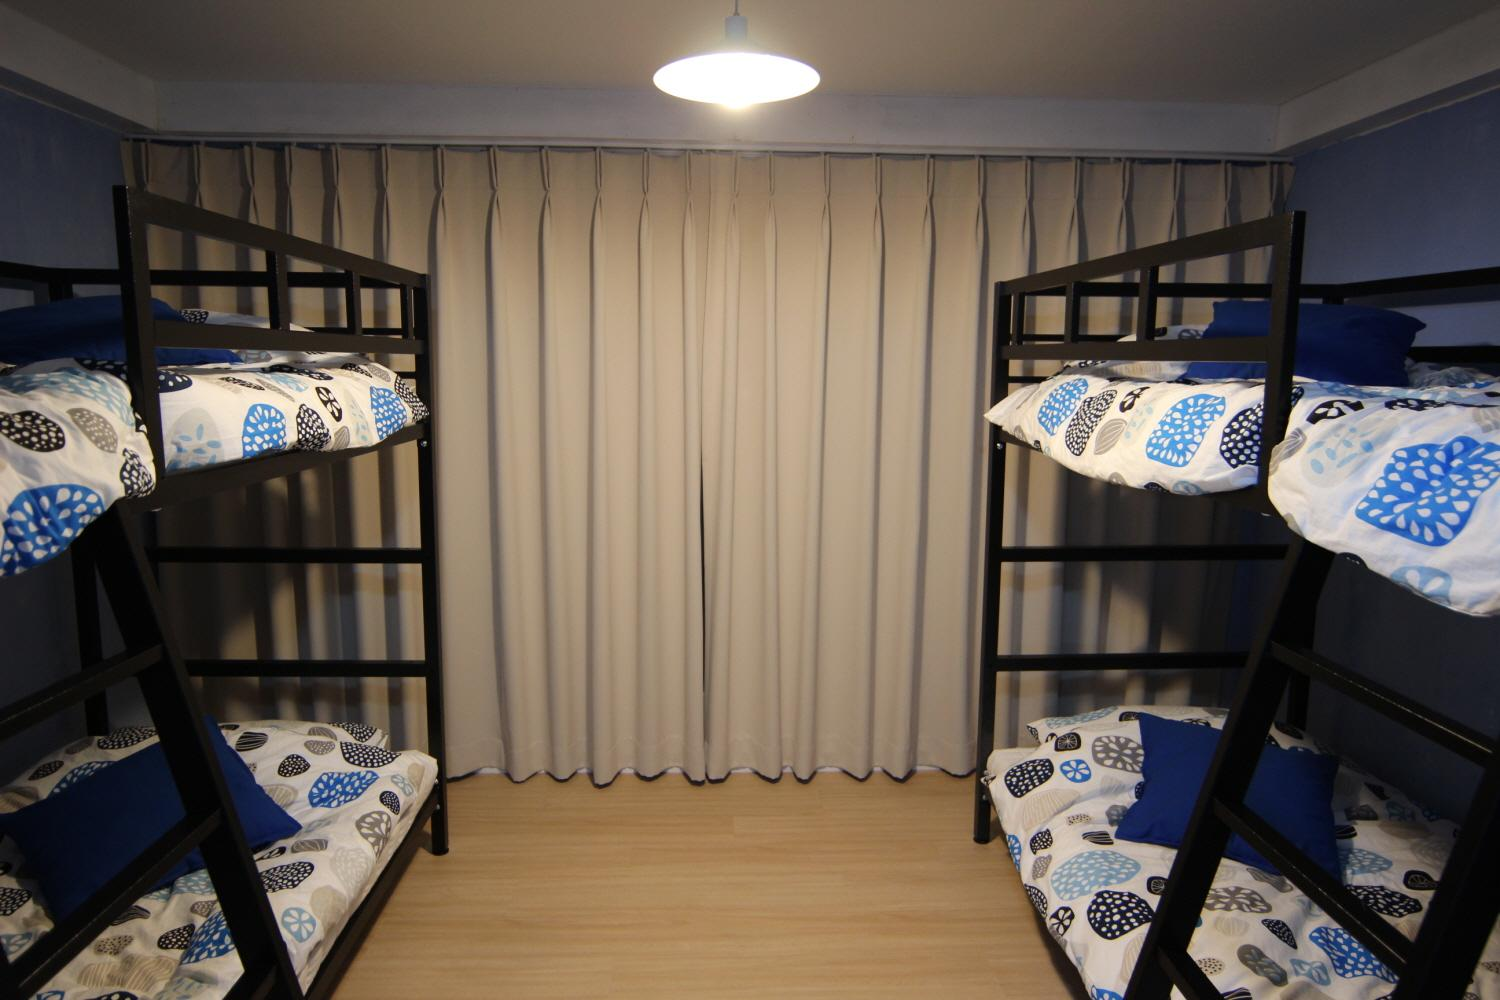 1 Person in 4-Bed Dormitory - Mixed